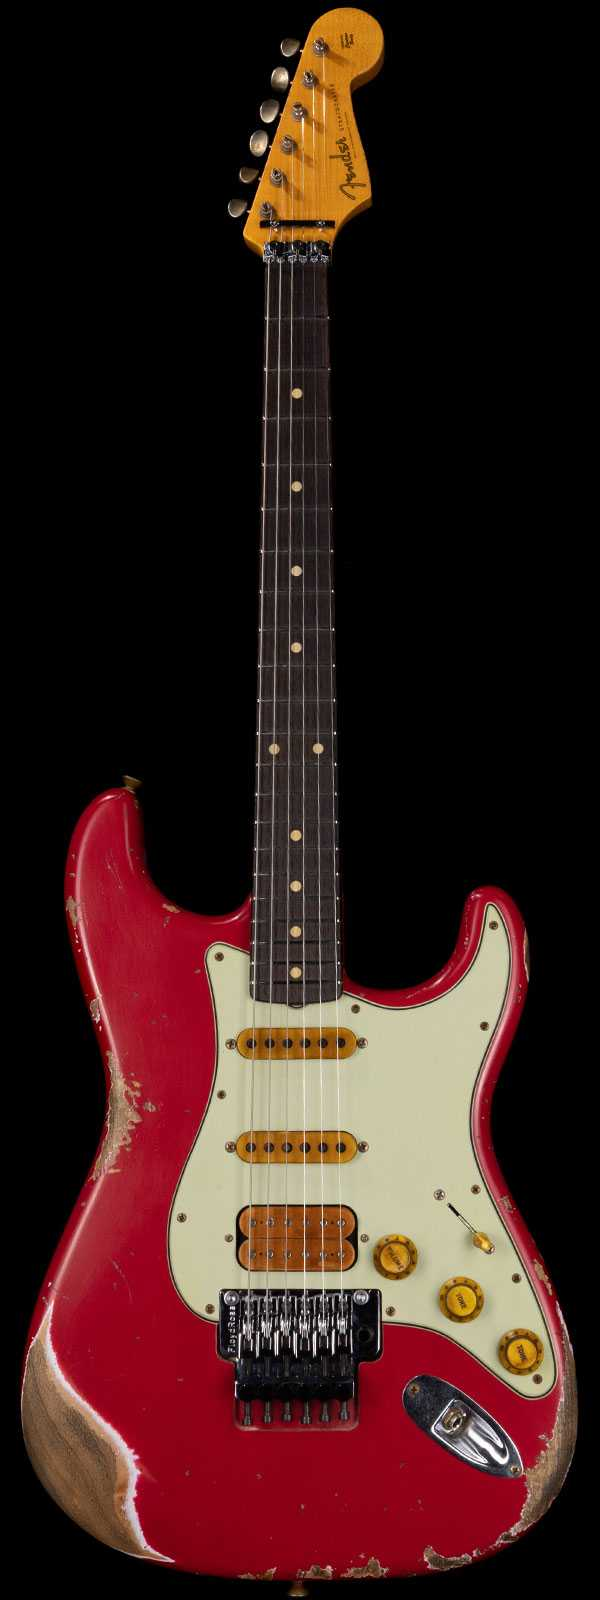 Fender Custom Shop Alley Cat Stratocaster Heavy Relic HSS Floyd Rose Torino Red